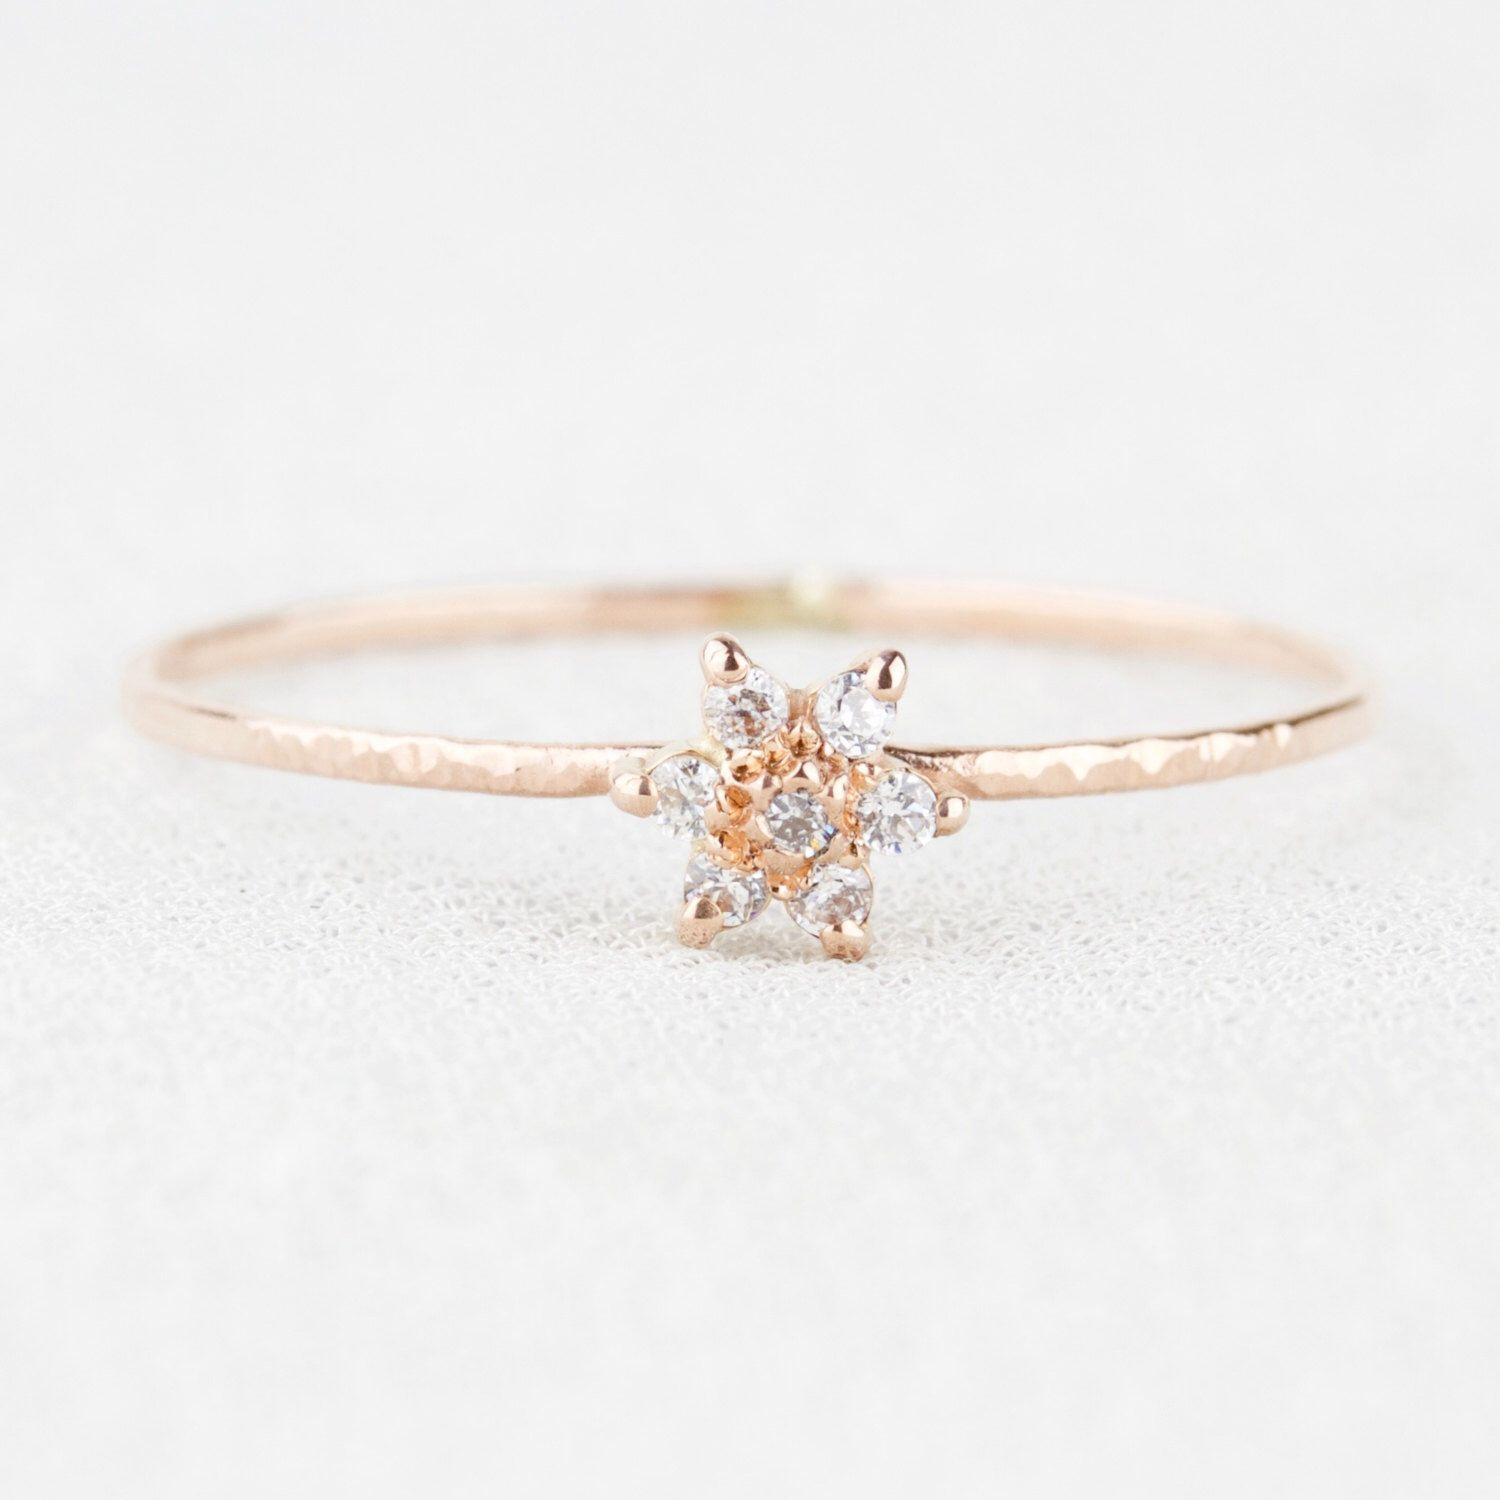 White Diamond Wood Anemone Flower Ring Delicate Solid 14k Gold